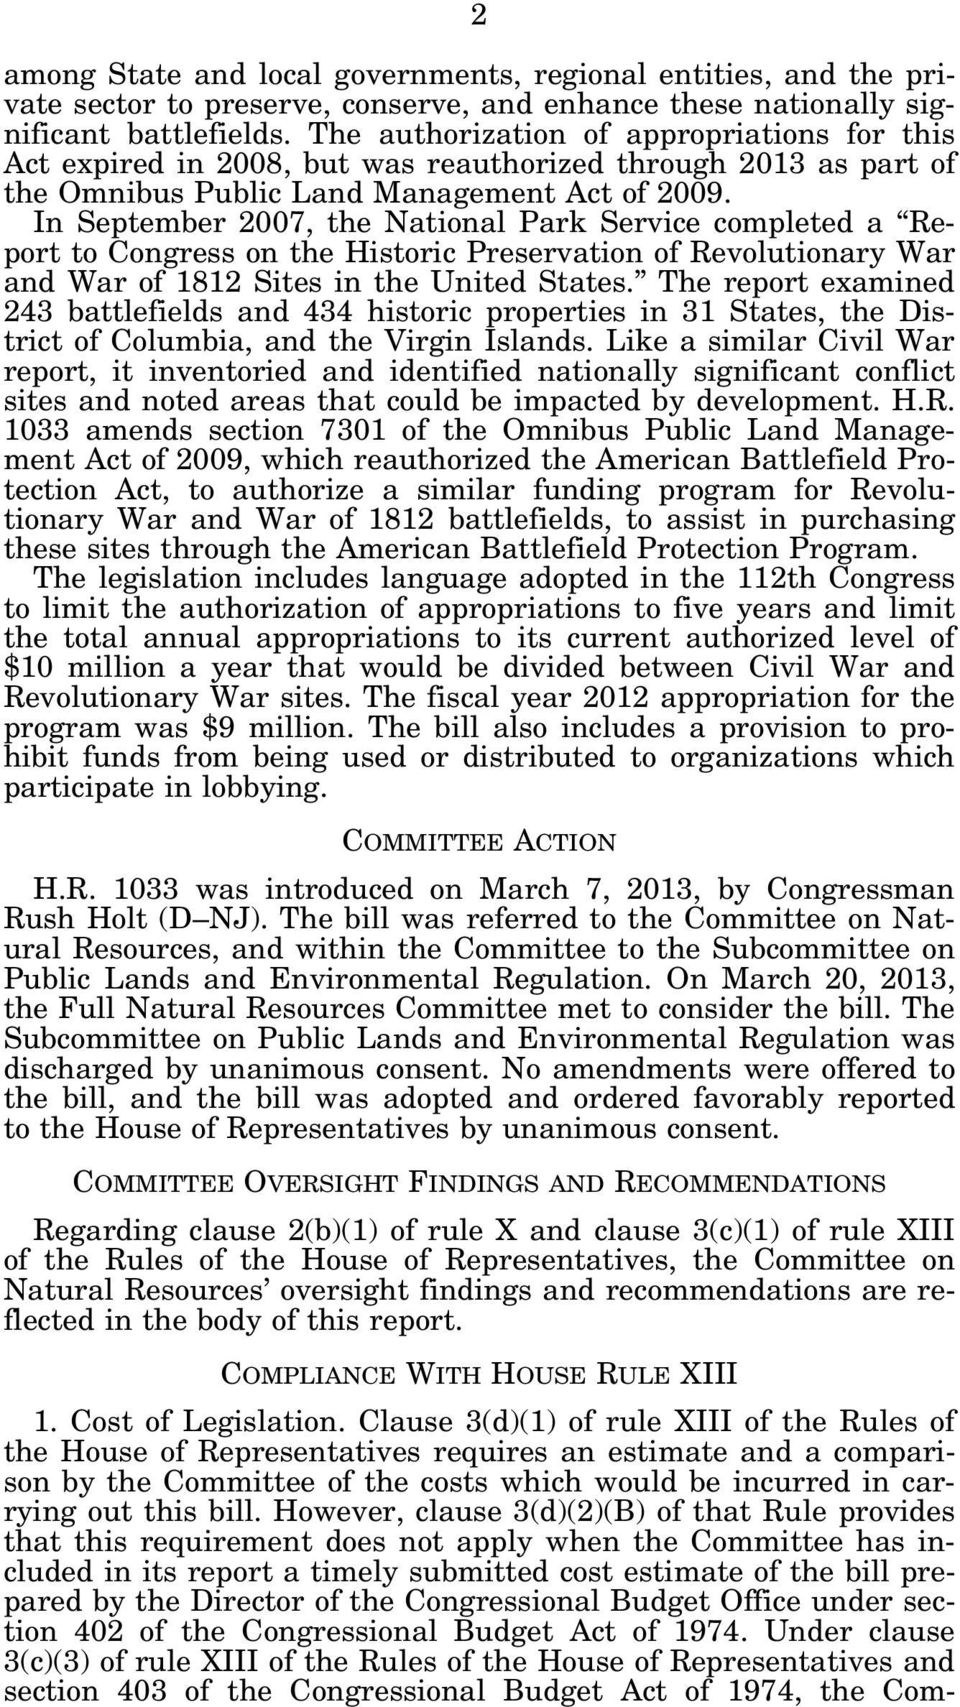 In September 2007, the National Park Service completed a Report to Congress on the Historic Preservation of Revolutionary War and War of 1812 Sites in the United States.